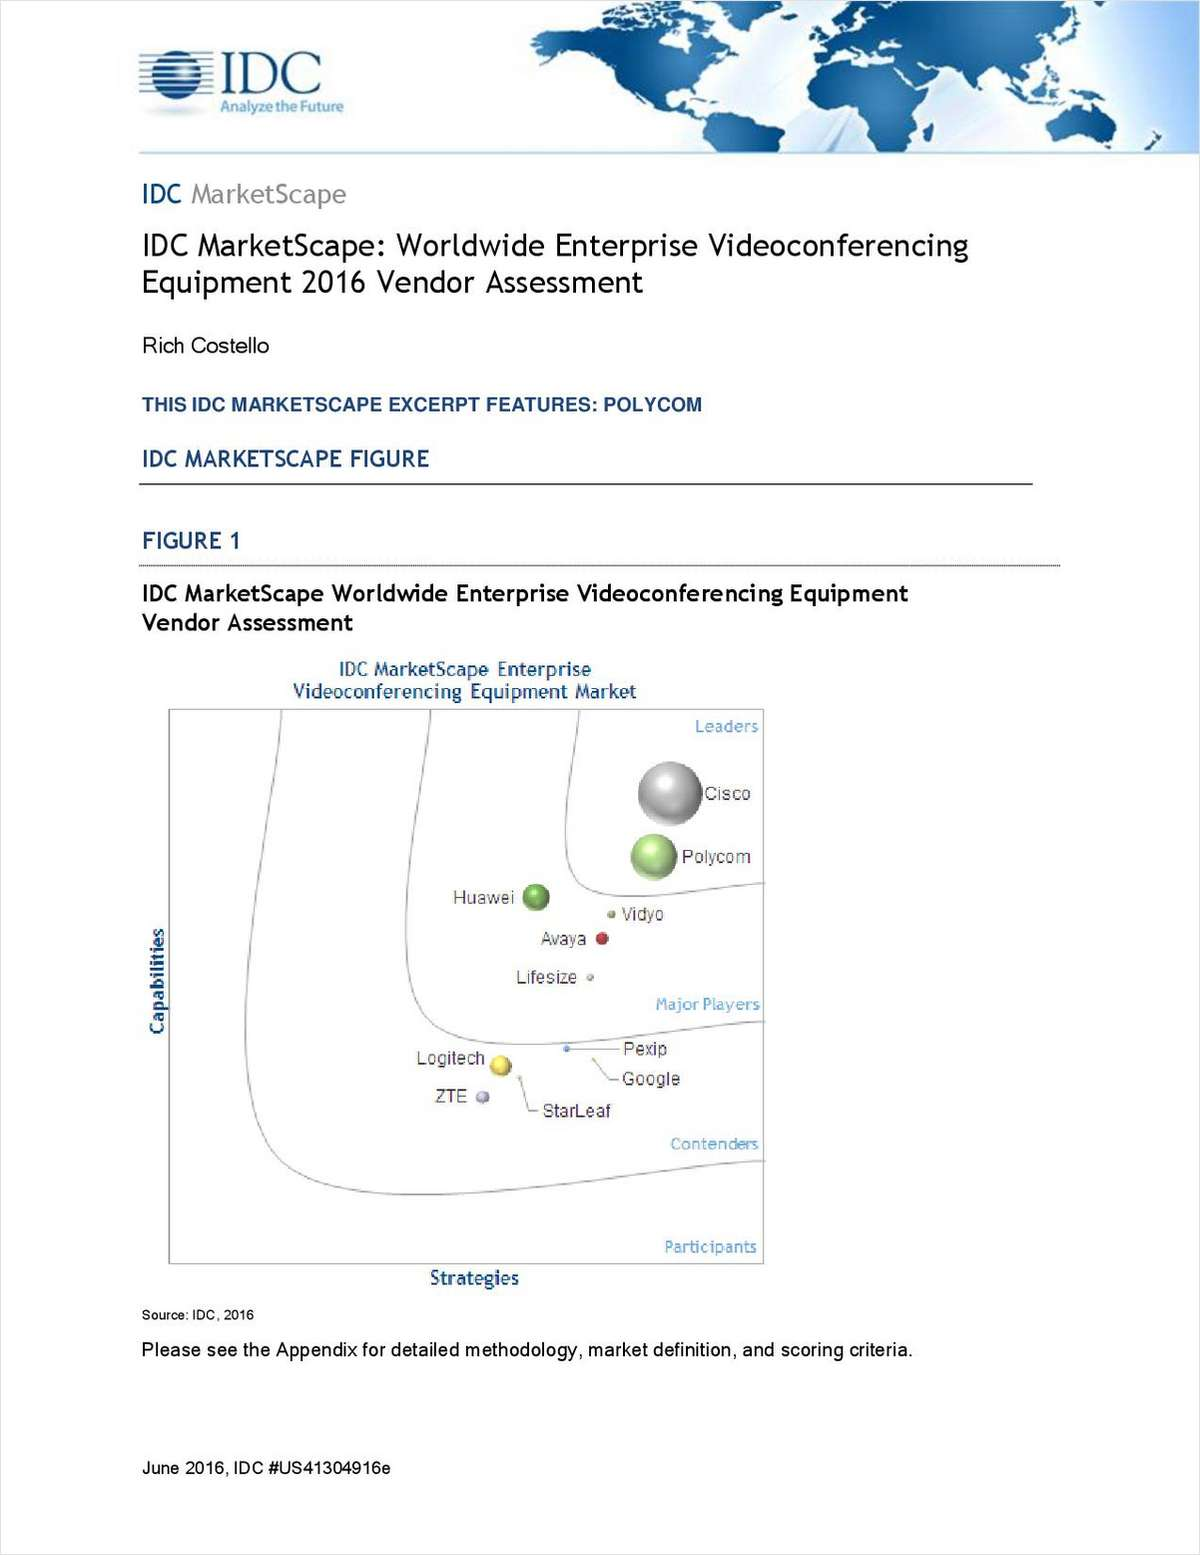 IDC Marketscape for Group Videoconferencing